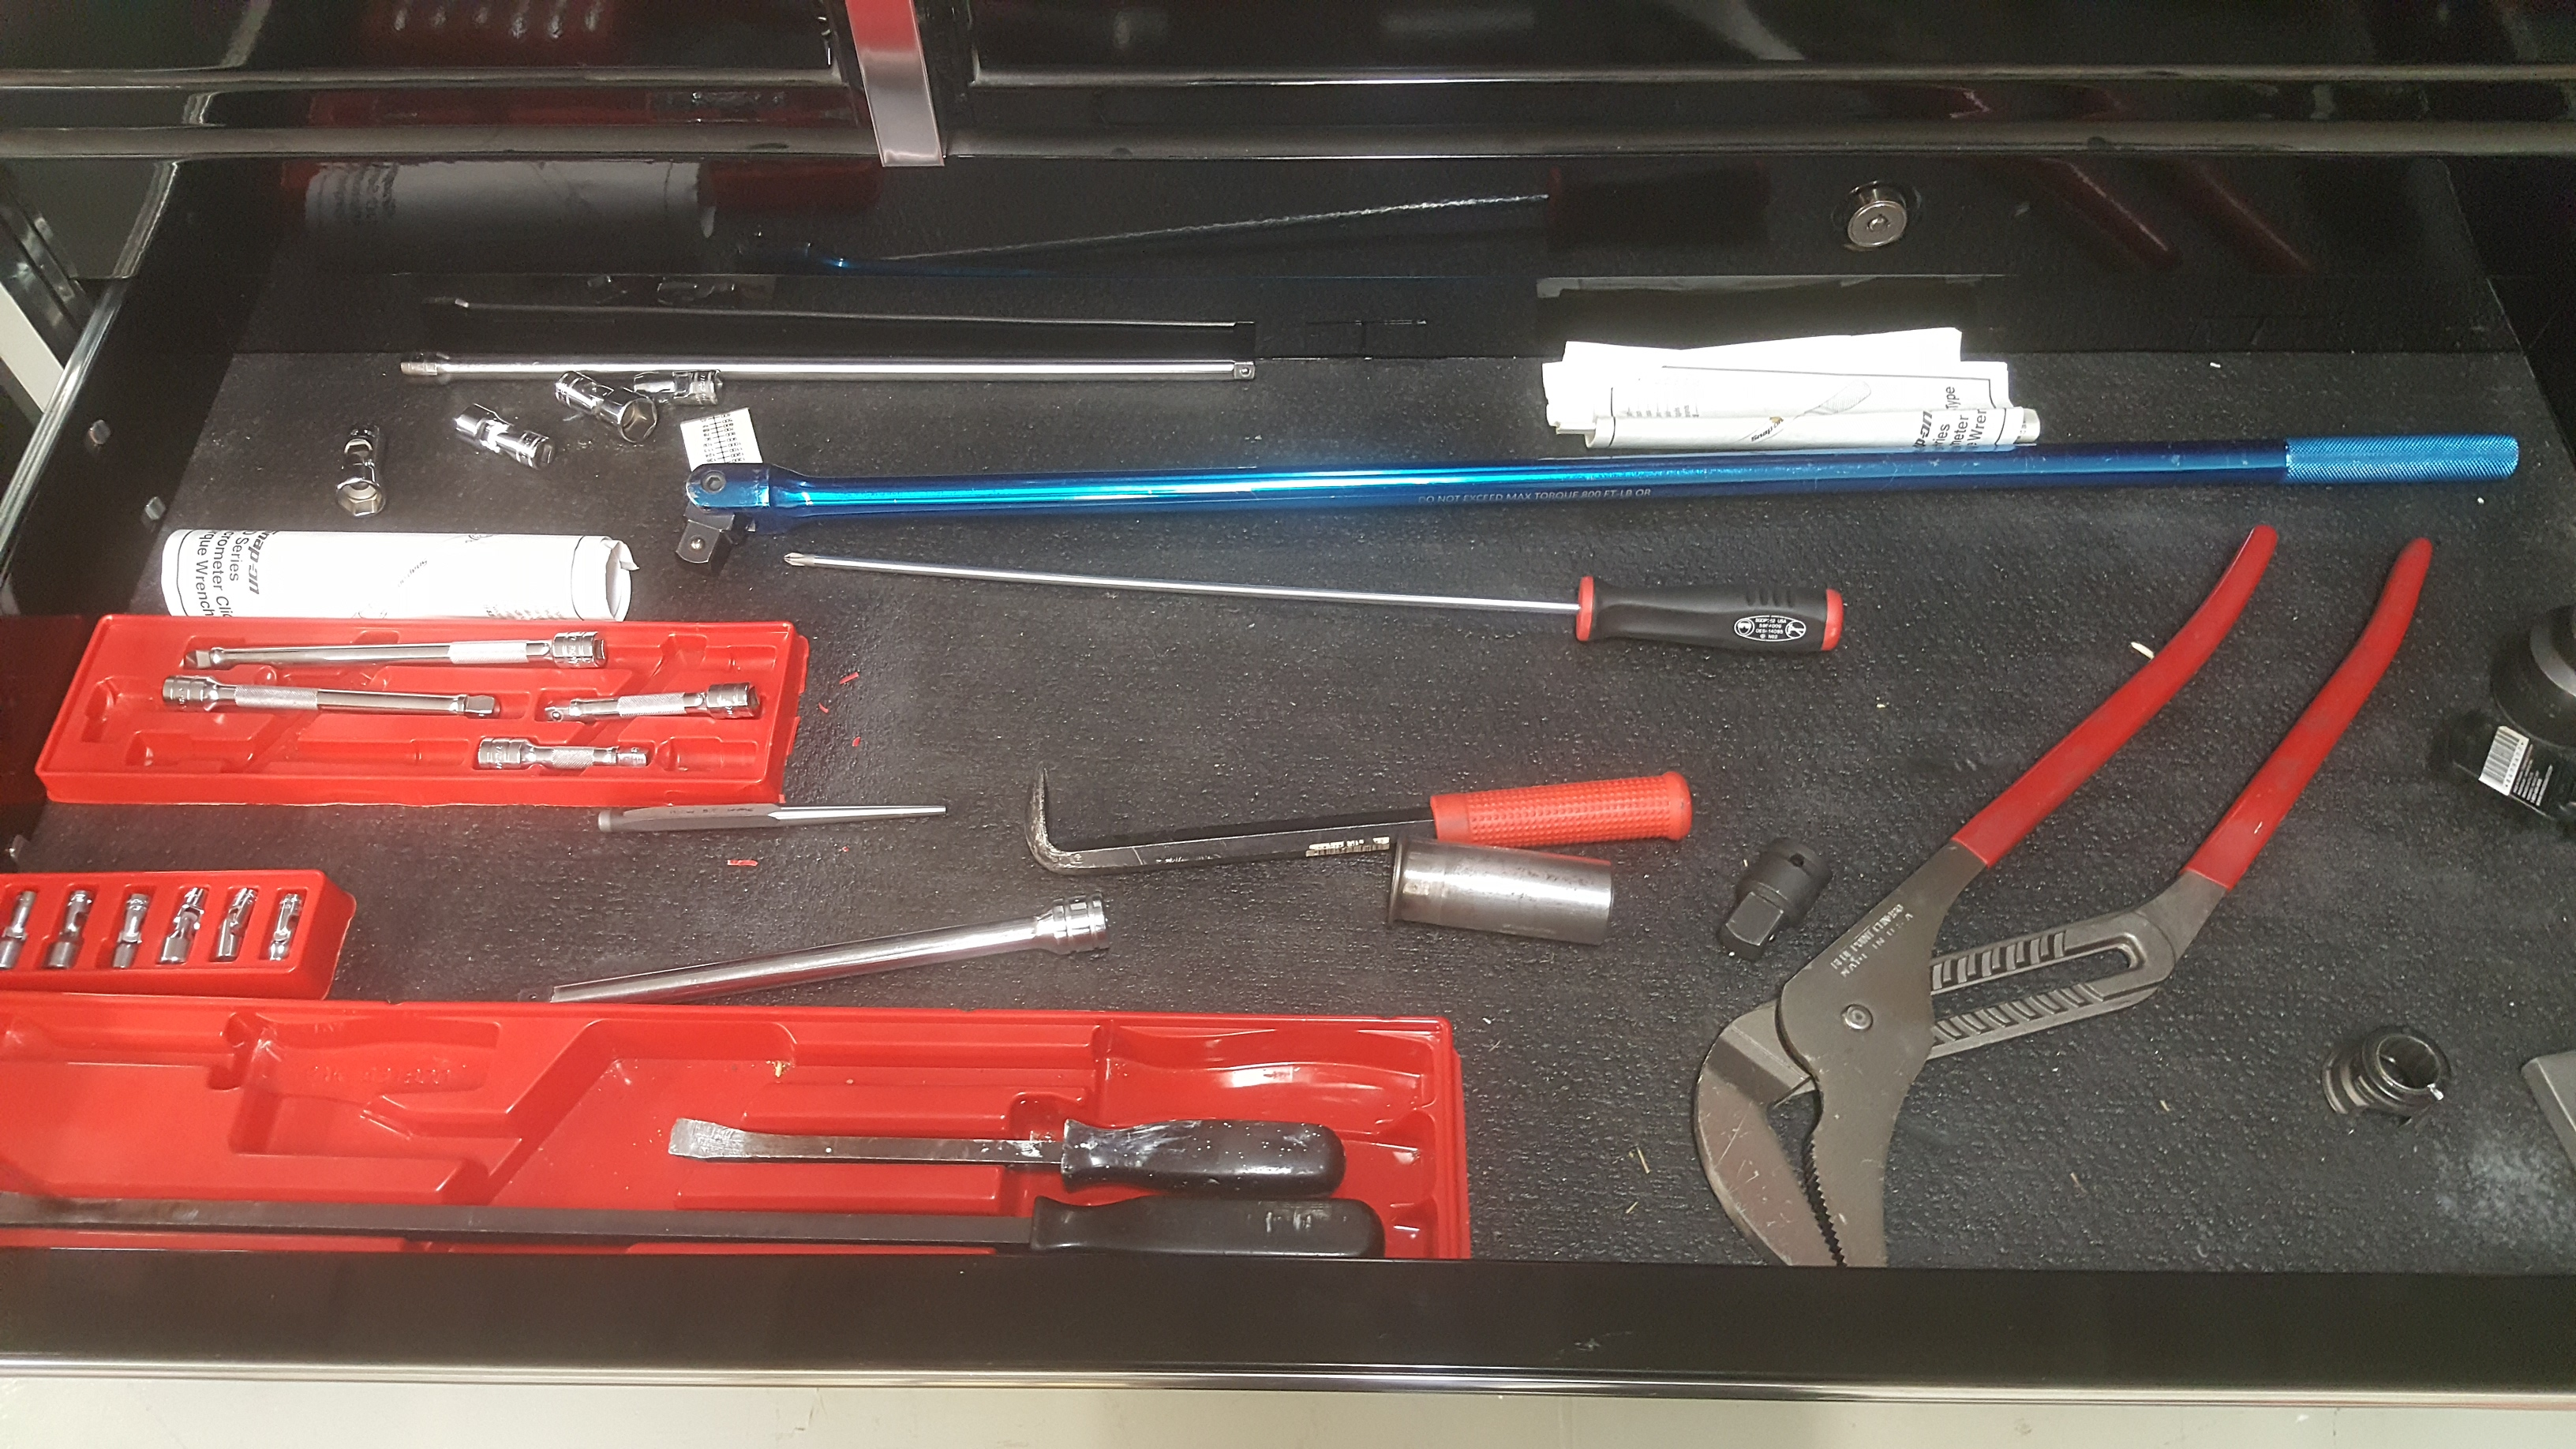 Lot 140 - Set of 2 SNAP ON Tool Chests, mod.KRL773APC mounted on mod.KRL793APC, with 34 drawers and ALL